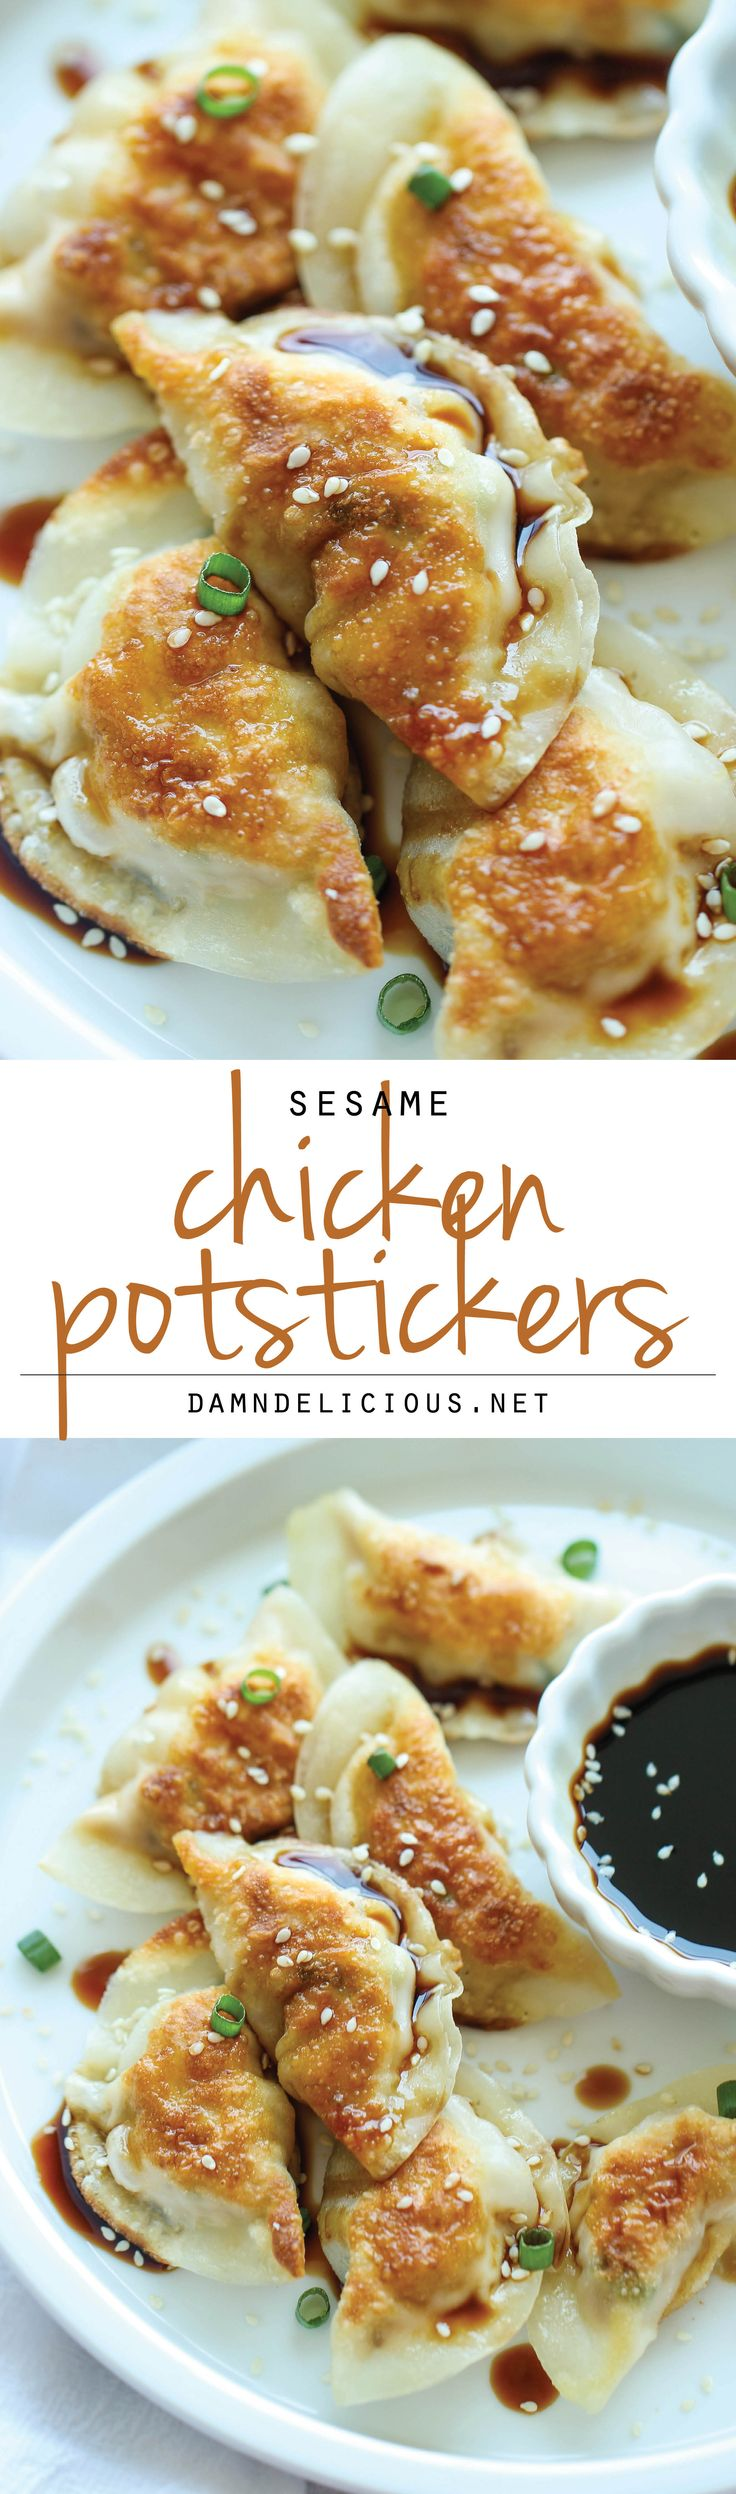 Sesame Chicken Potstickers – These are unbelievably easy to make. And theyre freezer-friendly too